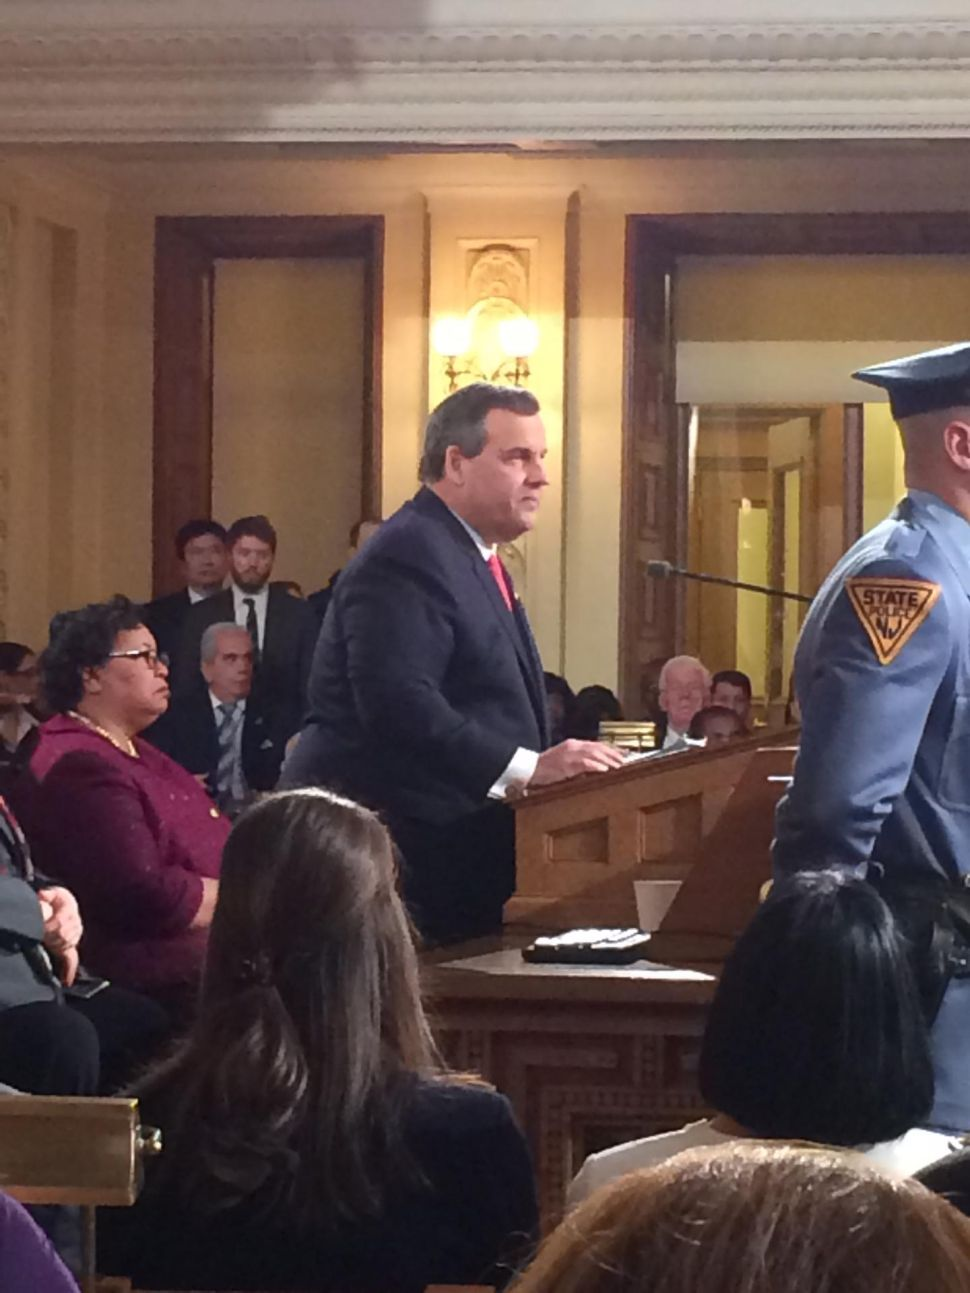 Governor Chris Christie's State of the State Address